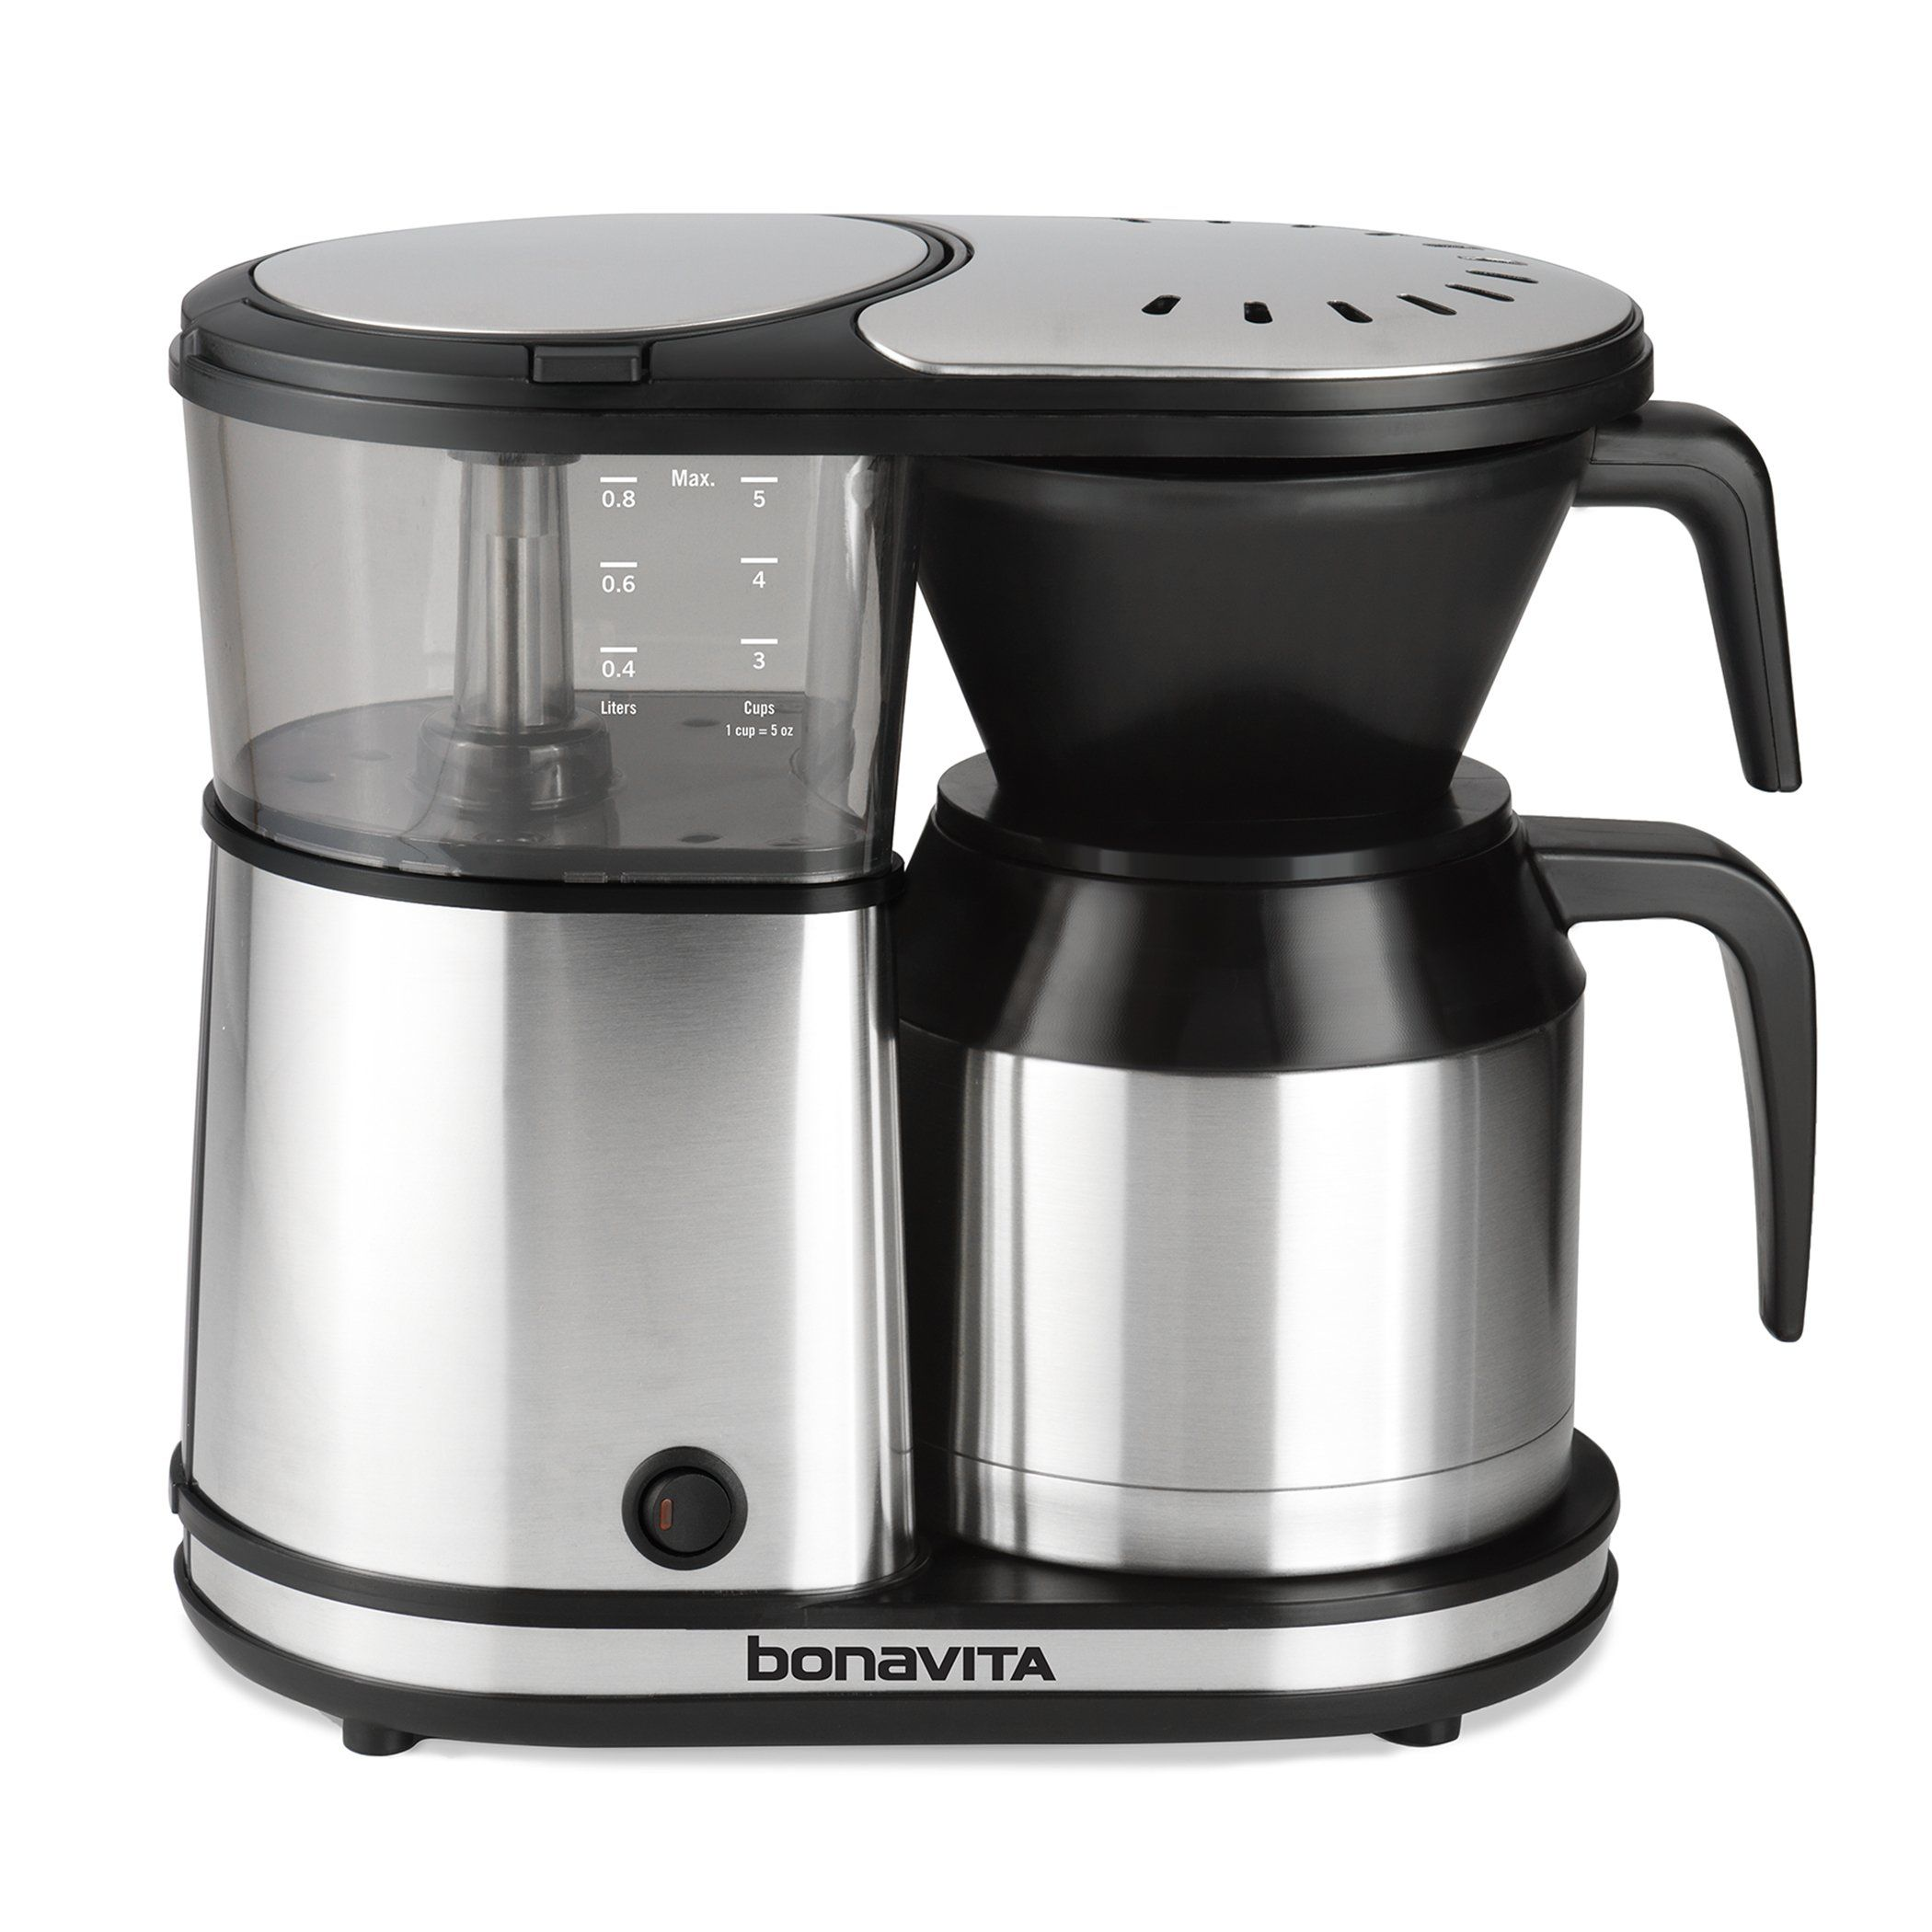 Bonavita 5Cup Coffee Maker Featuring Thermal